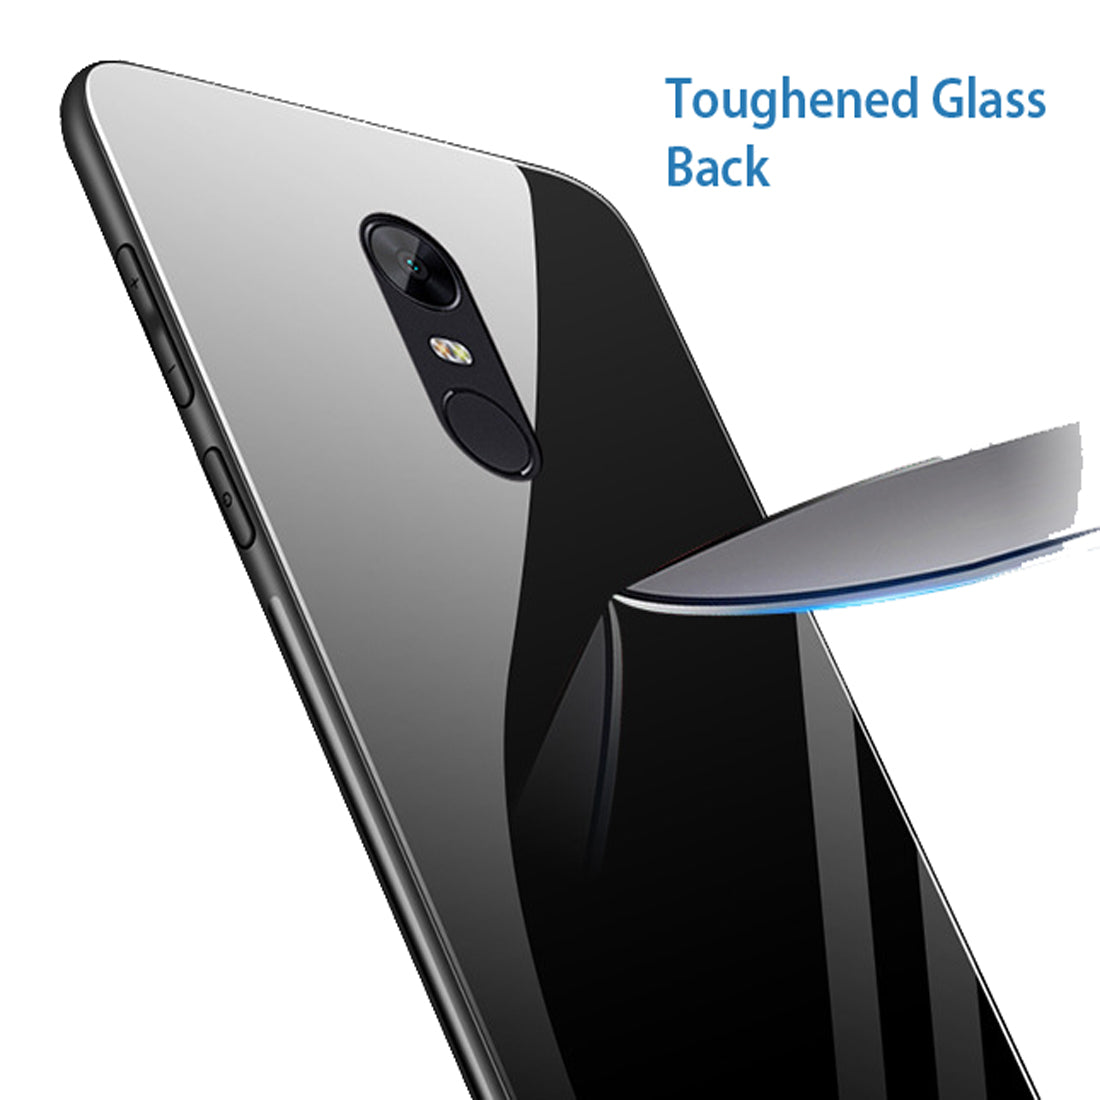 Toughened Glass Back Shock Proof Slim Case Cover for Xiaomi Redmi Note 5 - Black - Mobizang